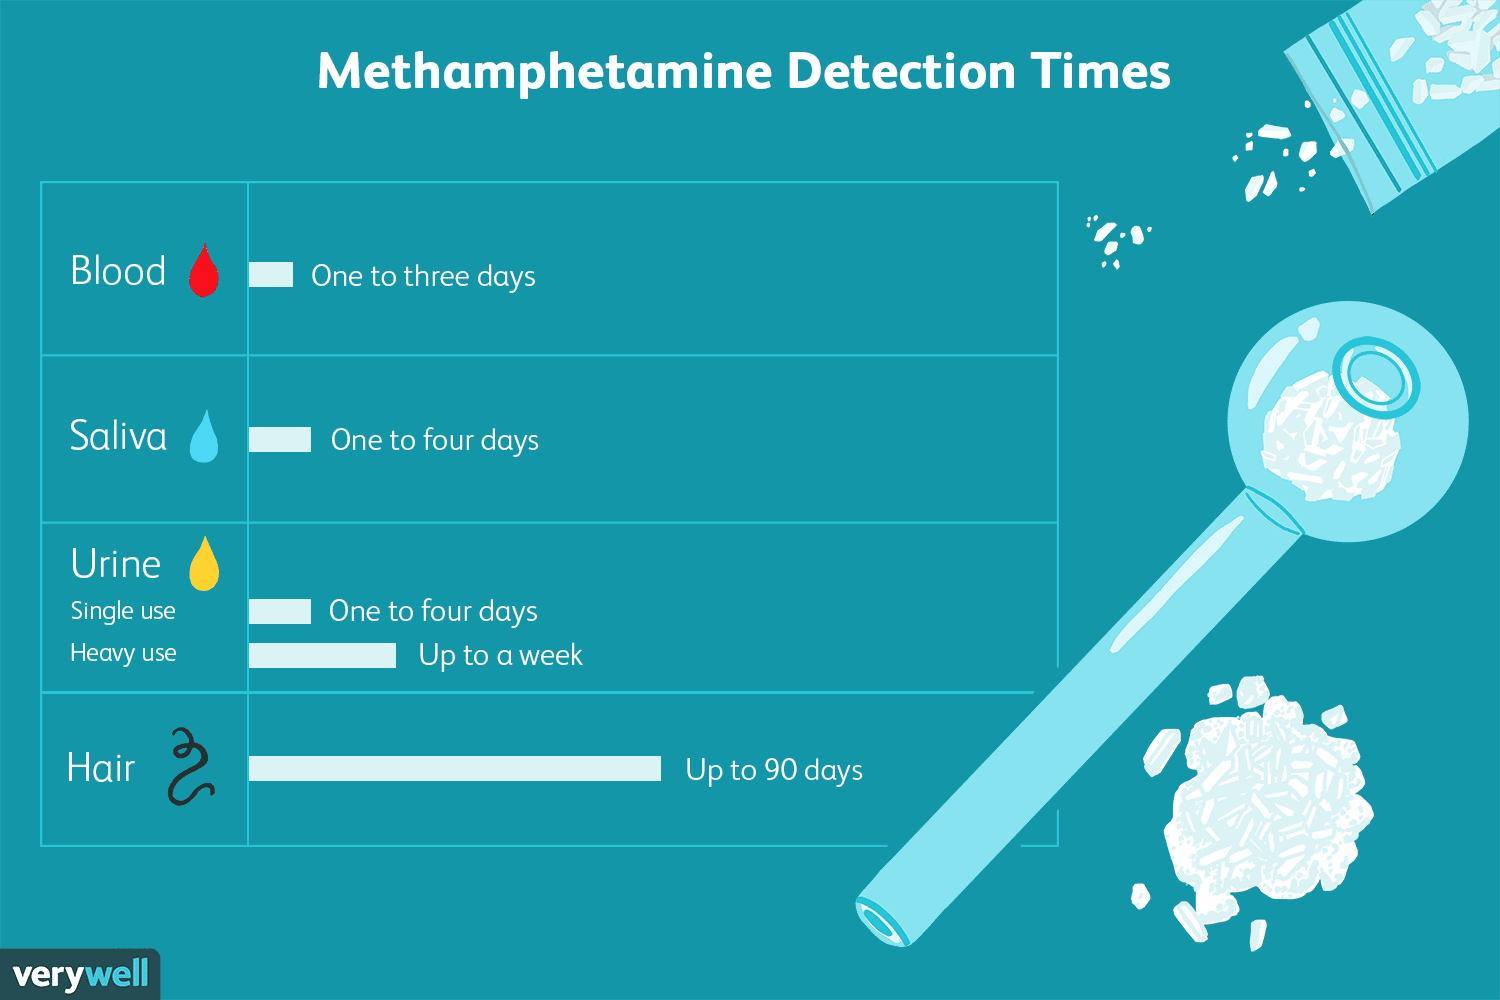 How Long Does Meth Stay in Your System?